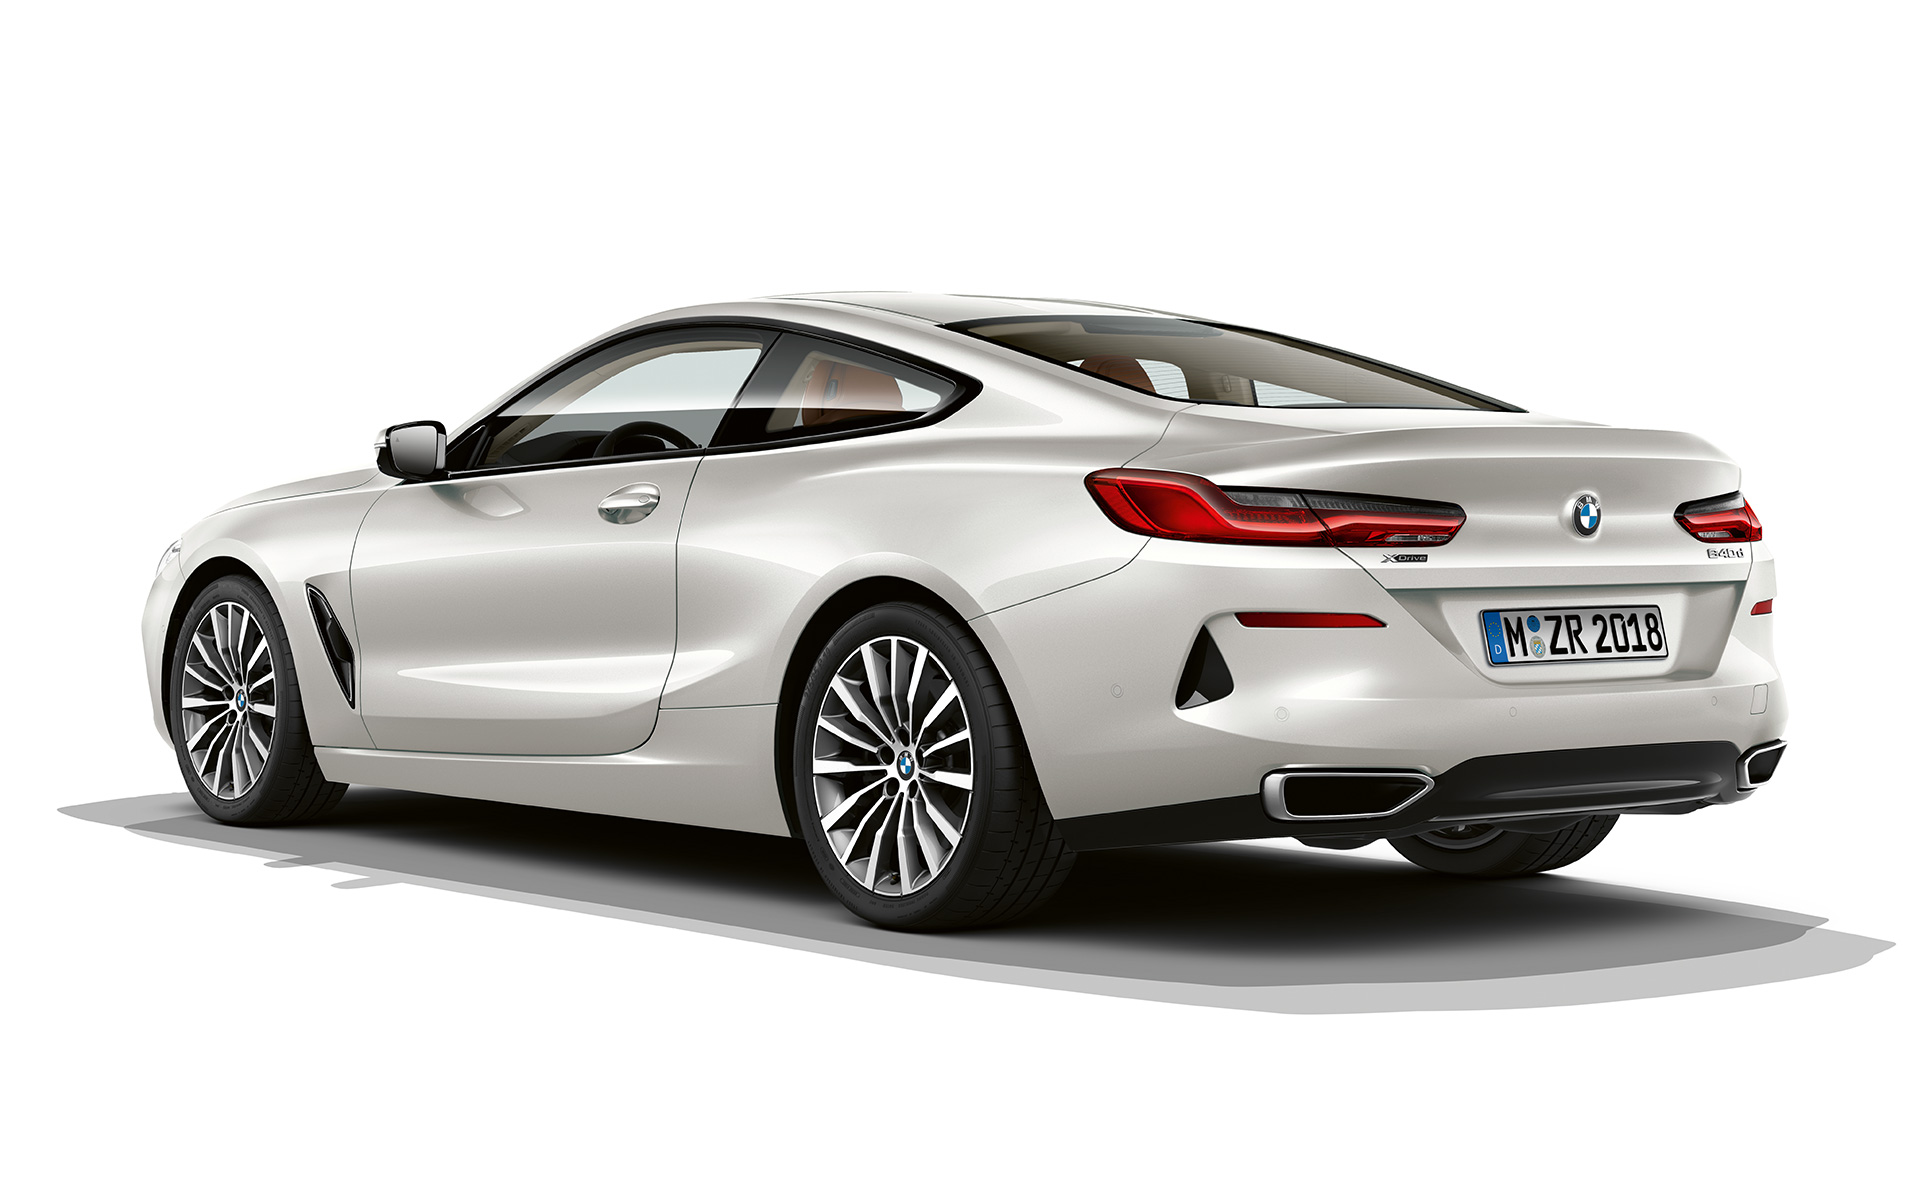 Still shot of the BMW 8 Series Coupé in Mineral White metallic against a white background.